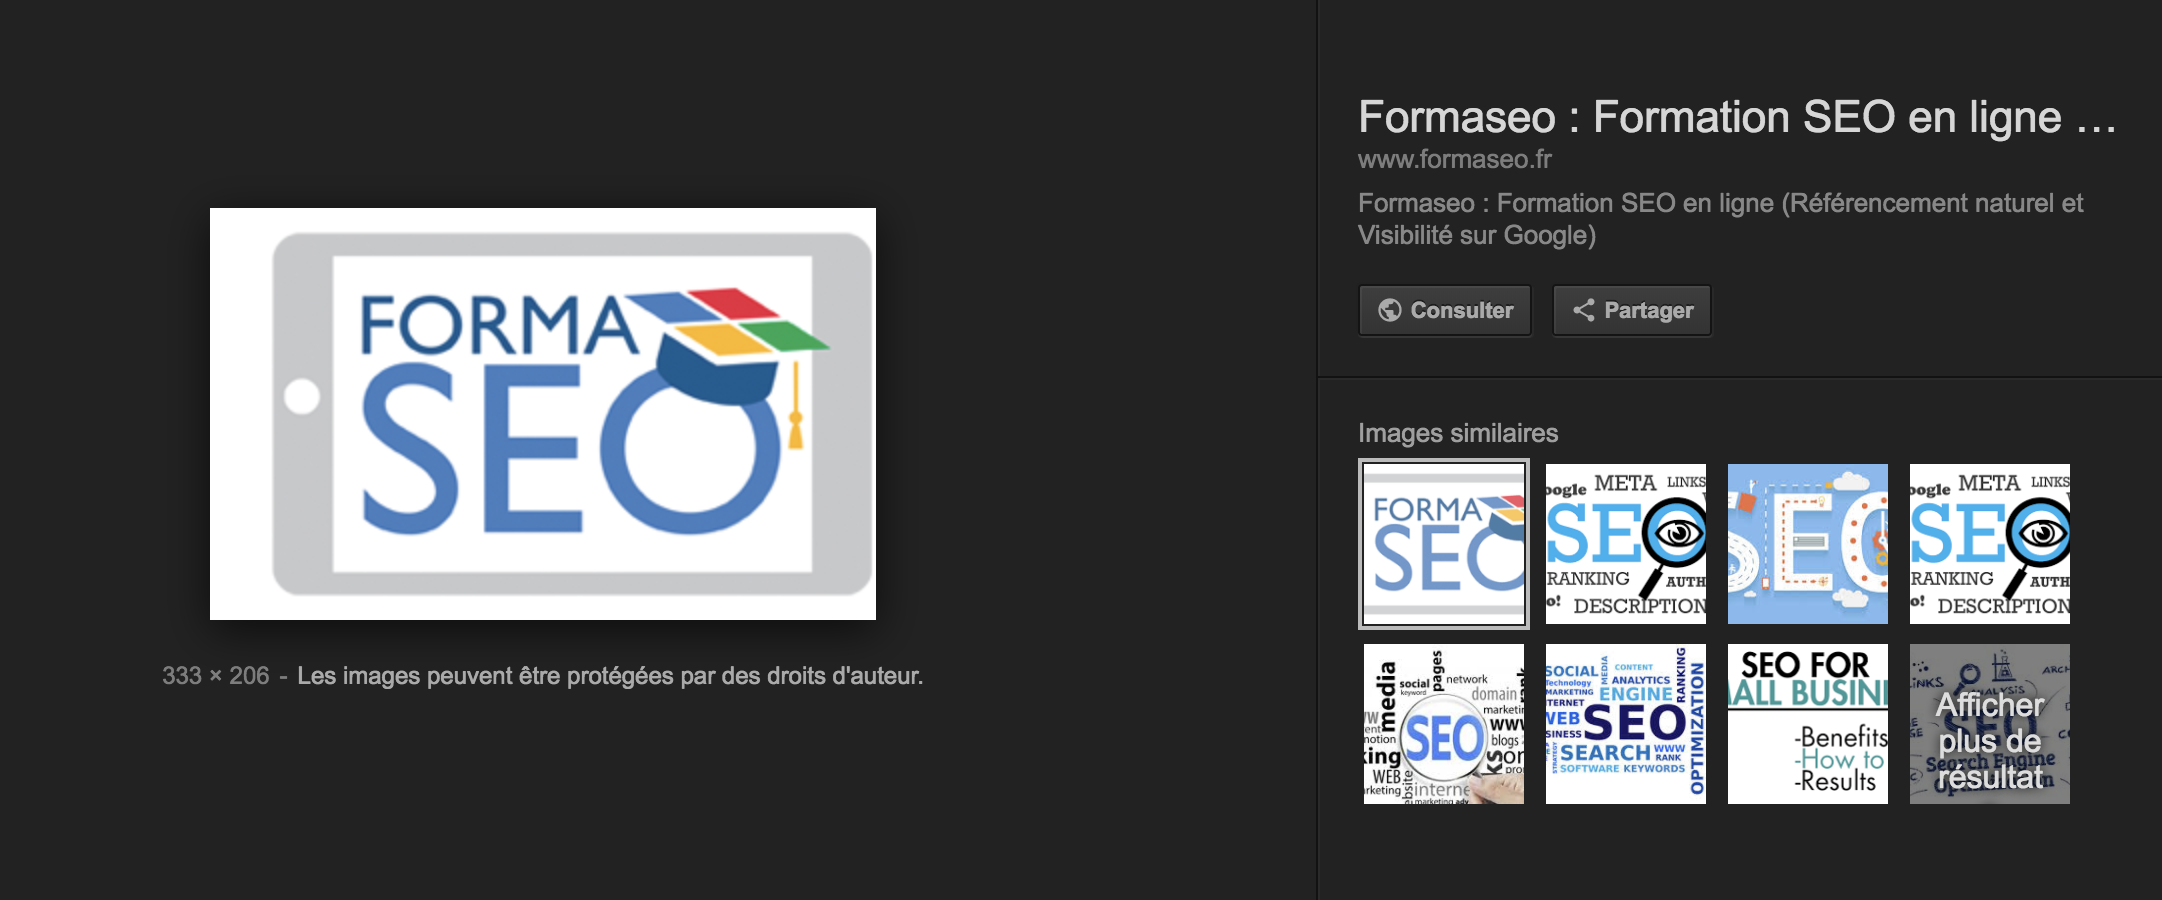 google-images-bouton-view-image.png